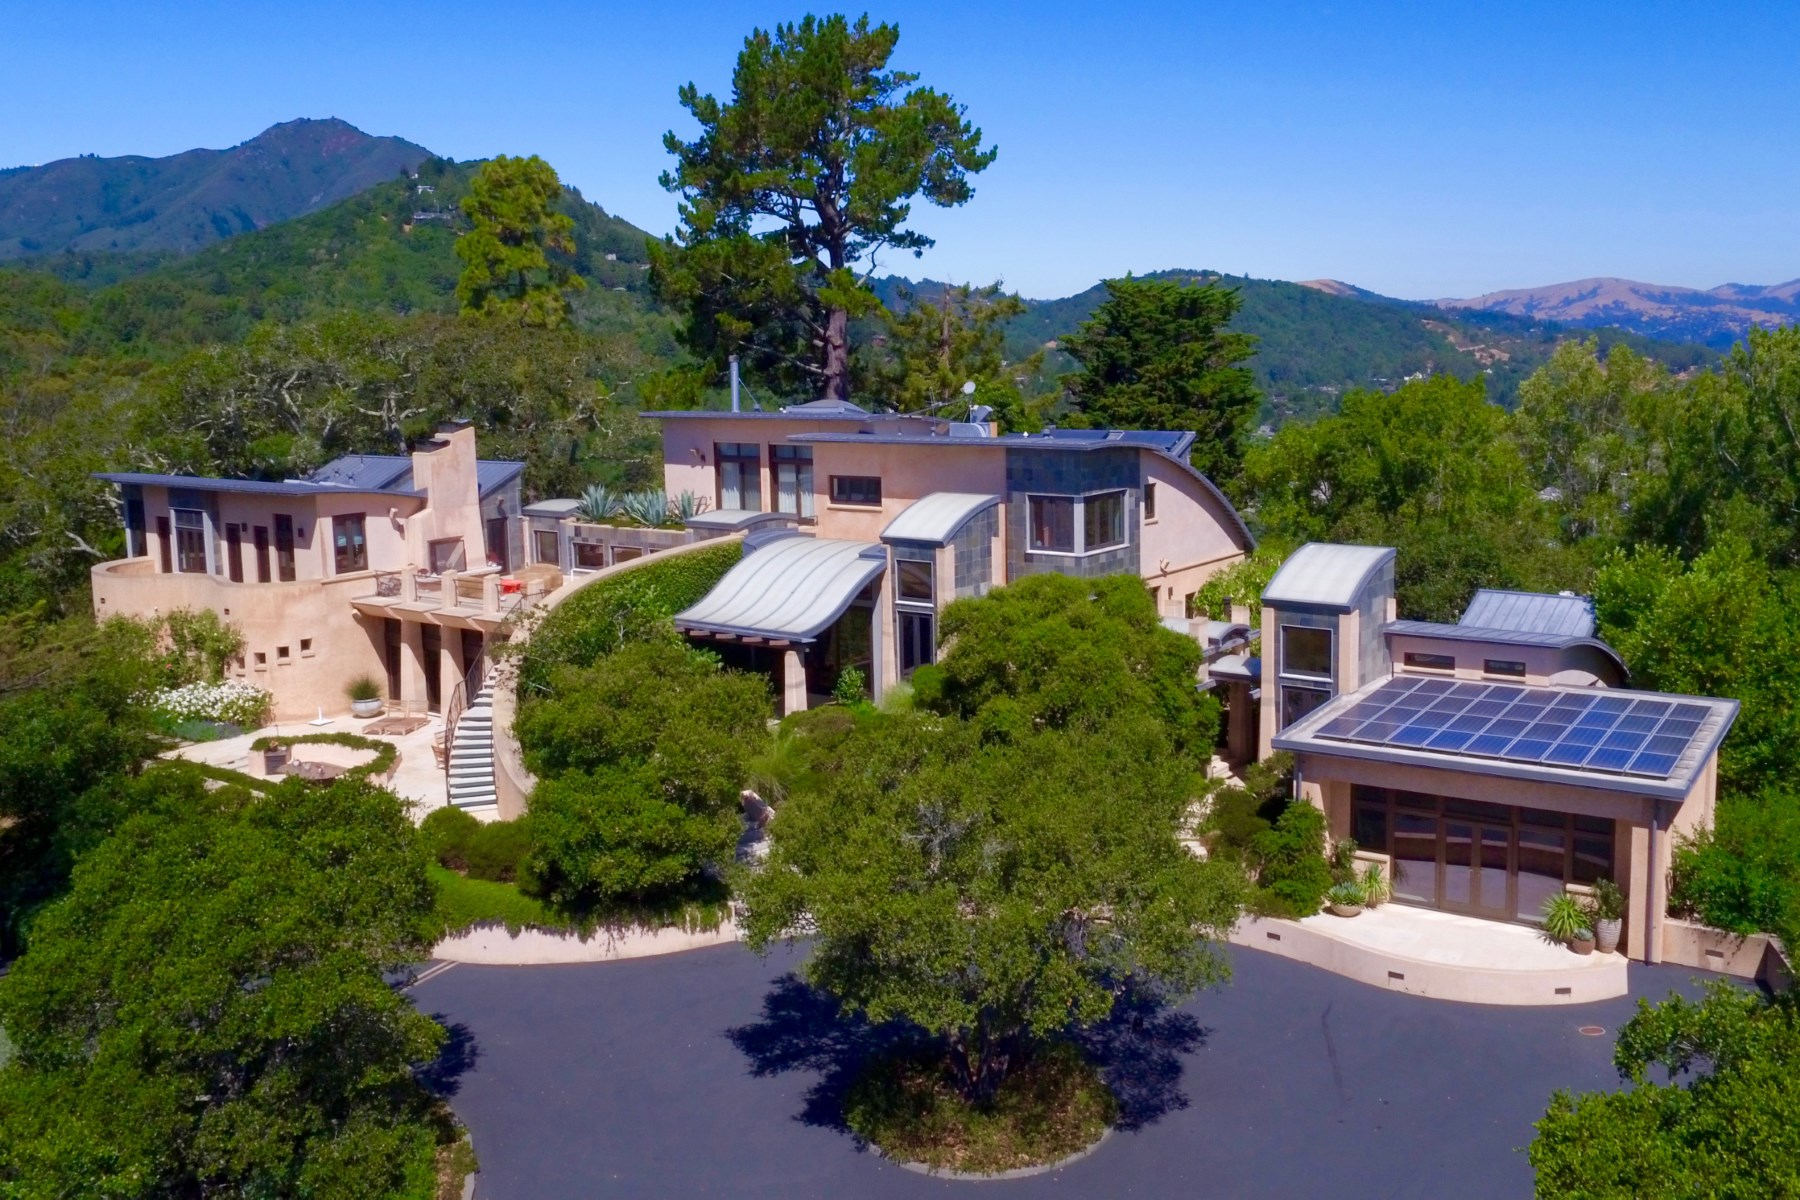 Casa Unifamiliar por un Venta en Unprecedented Approx. 11-Acre Compound Corte Madera, California 94925 Estados Unidos